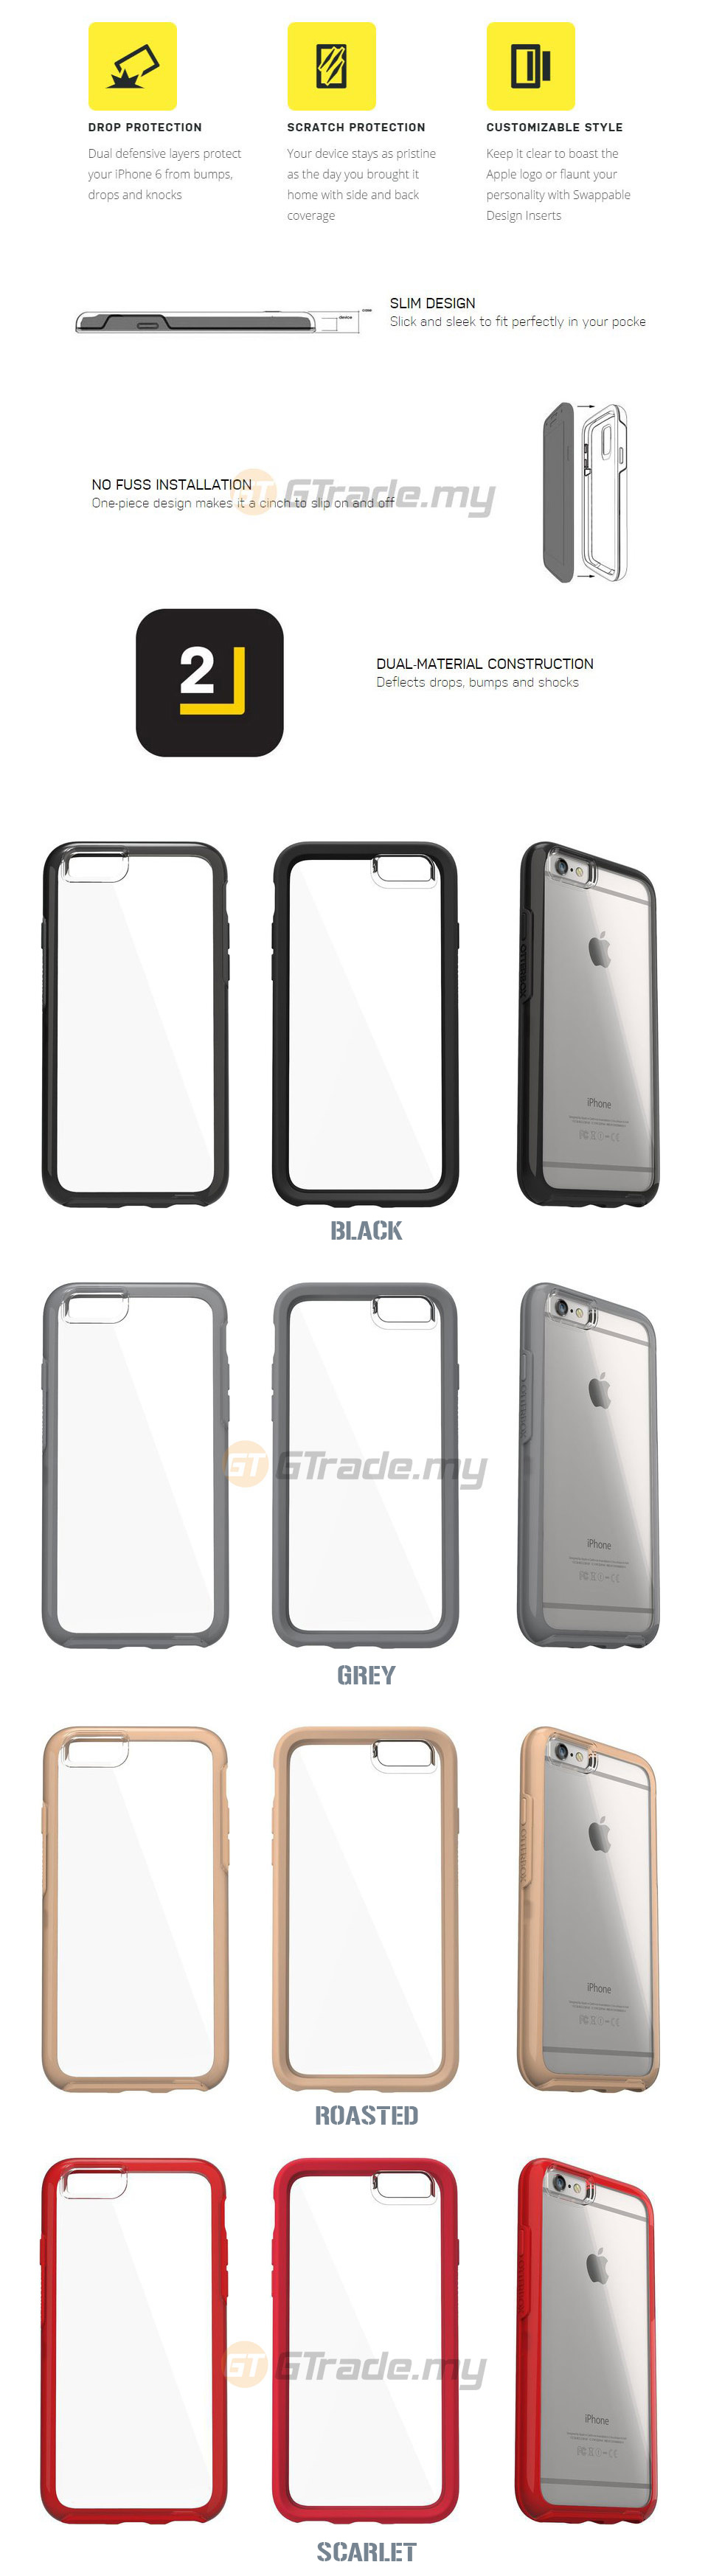 otterbox-symmetry-clear-case-spectre-style-clean-drop-protect-apple-iphone-6s-6-plus-p